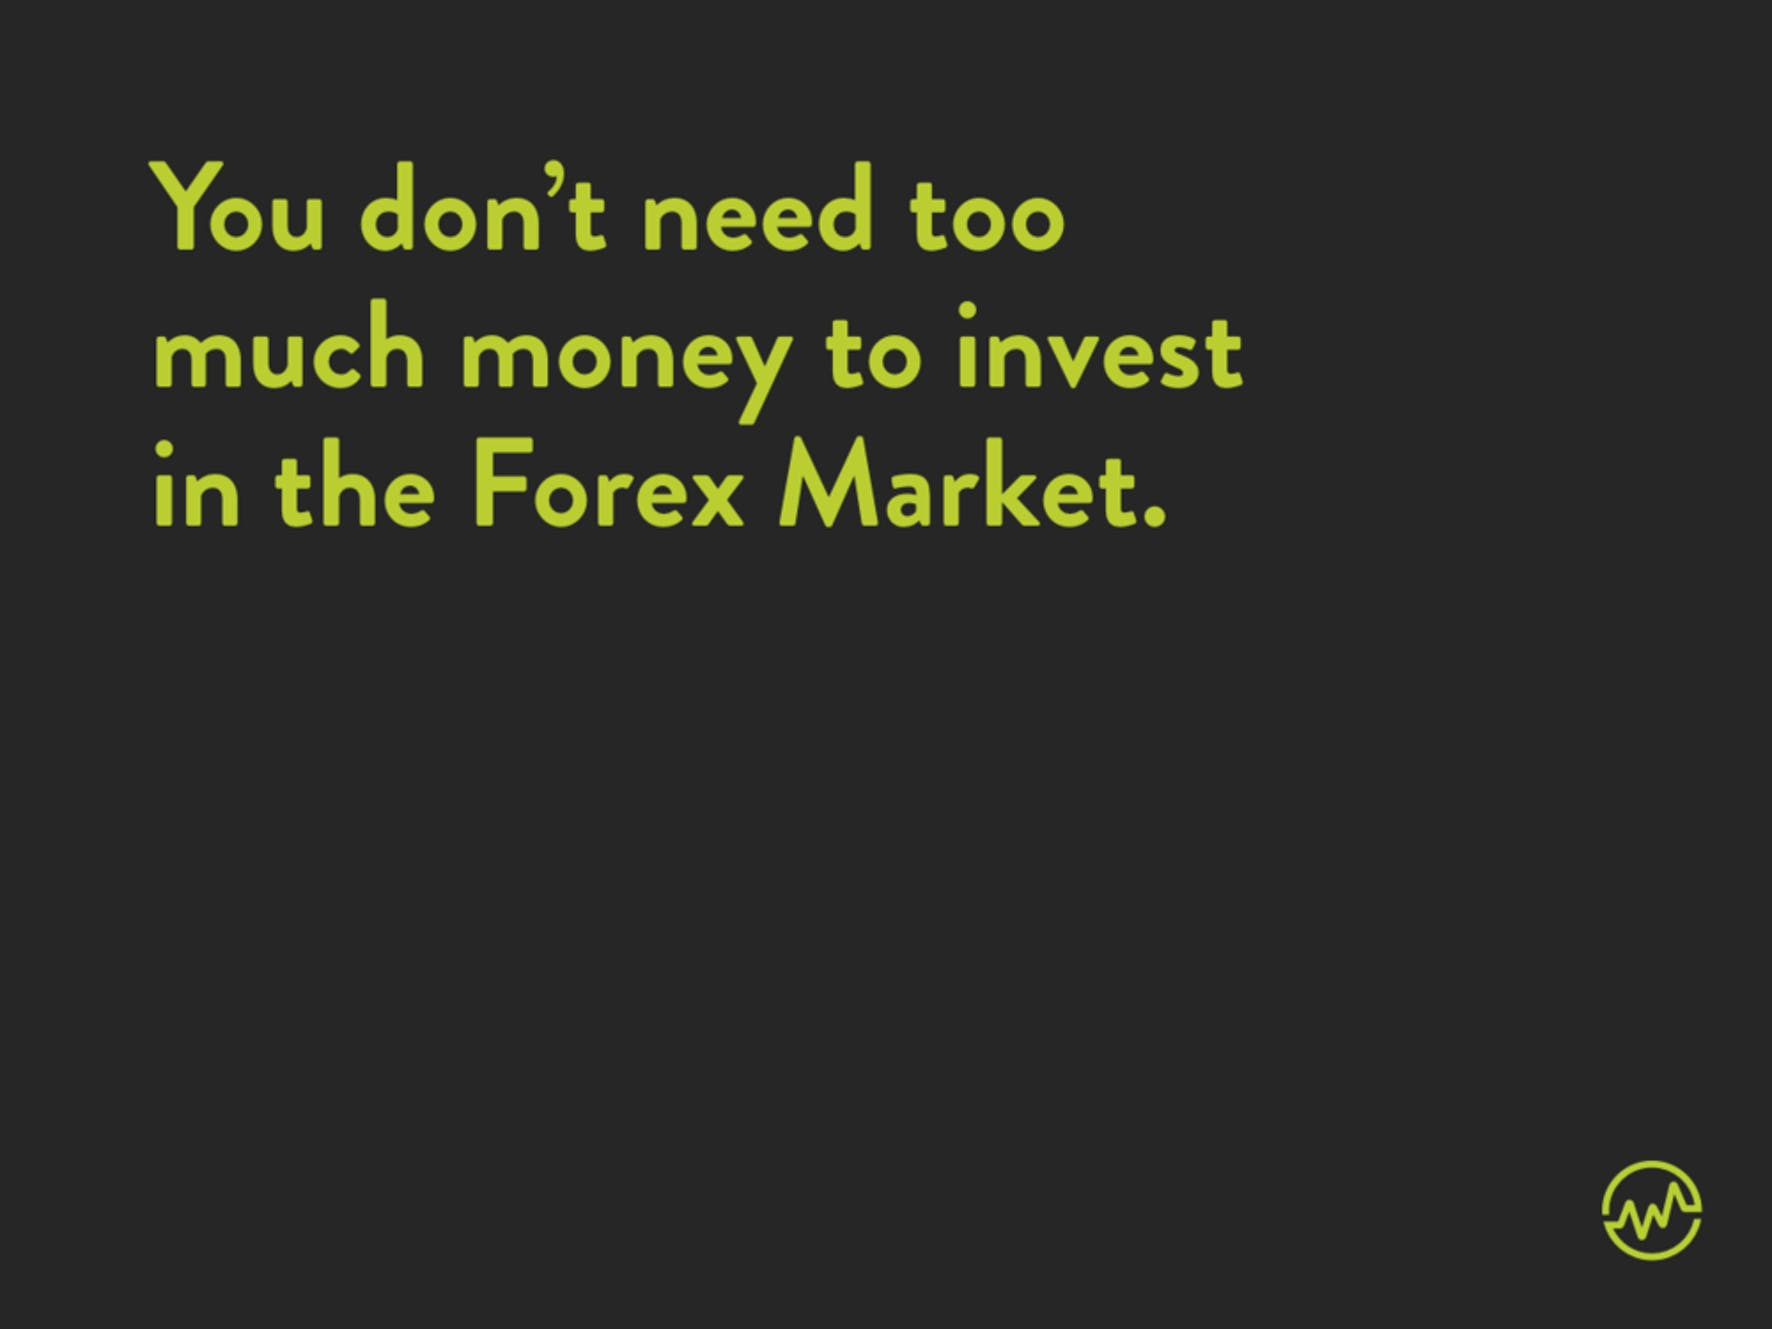 Forex for beginners: you don't need too much money to invest in the forex market